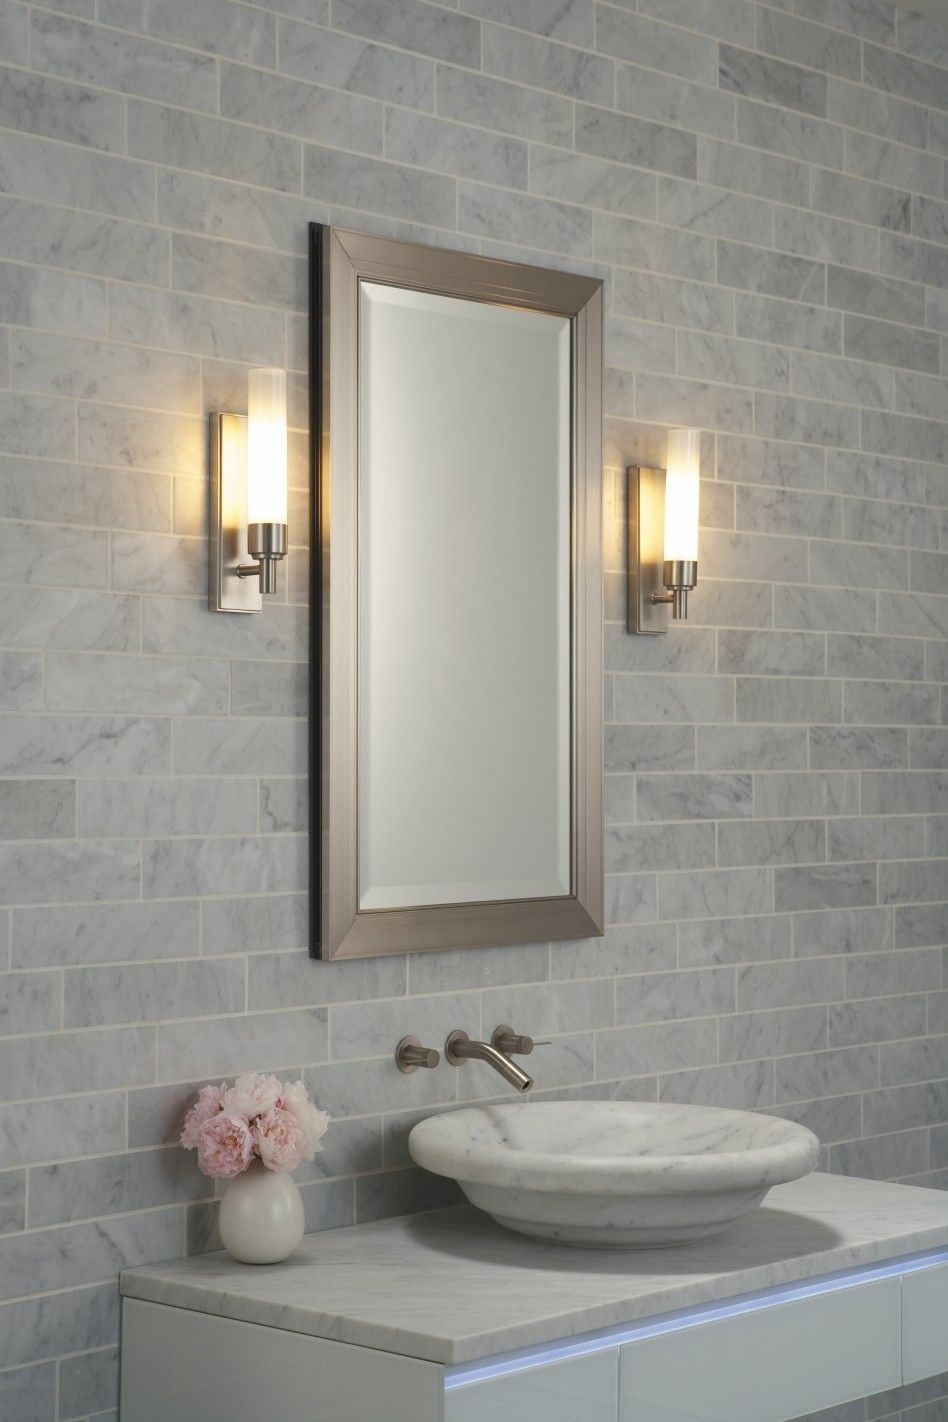 Bathroom Awesome Bathroom Fixtures Wall Lights Over White Mirror